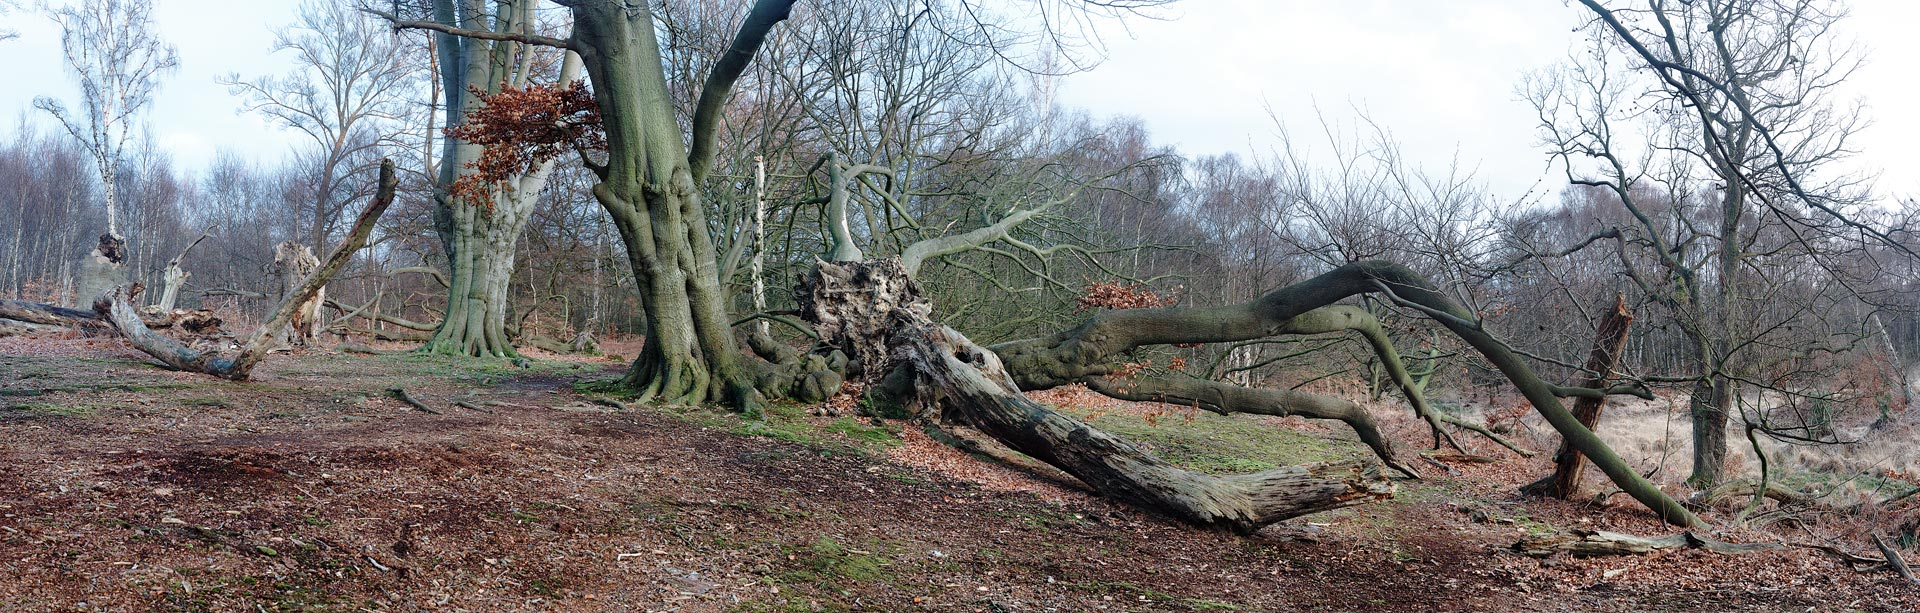 Epping Forest in winter, Essex, England,UK